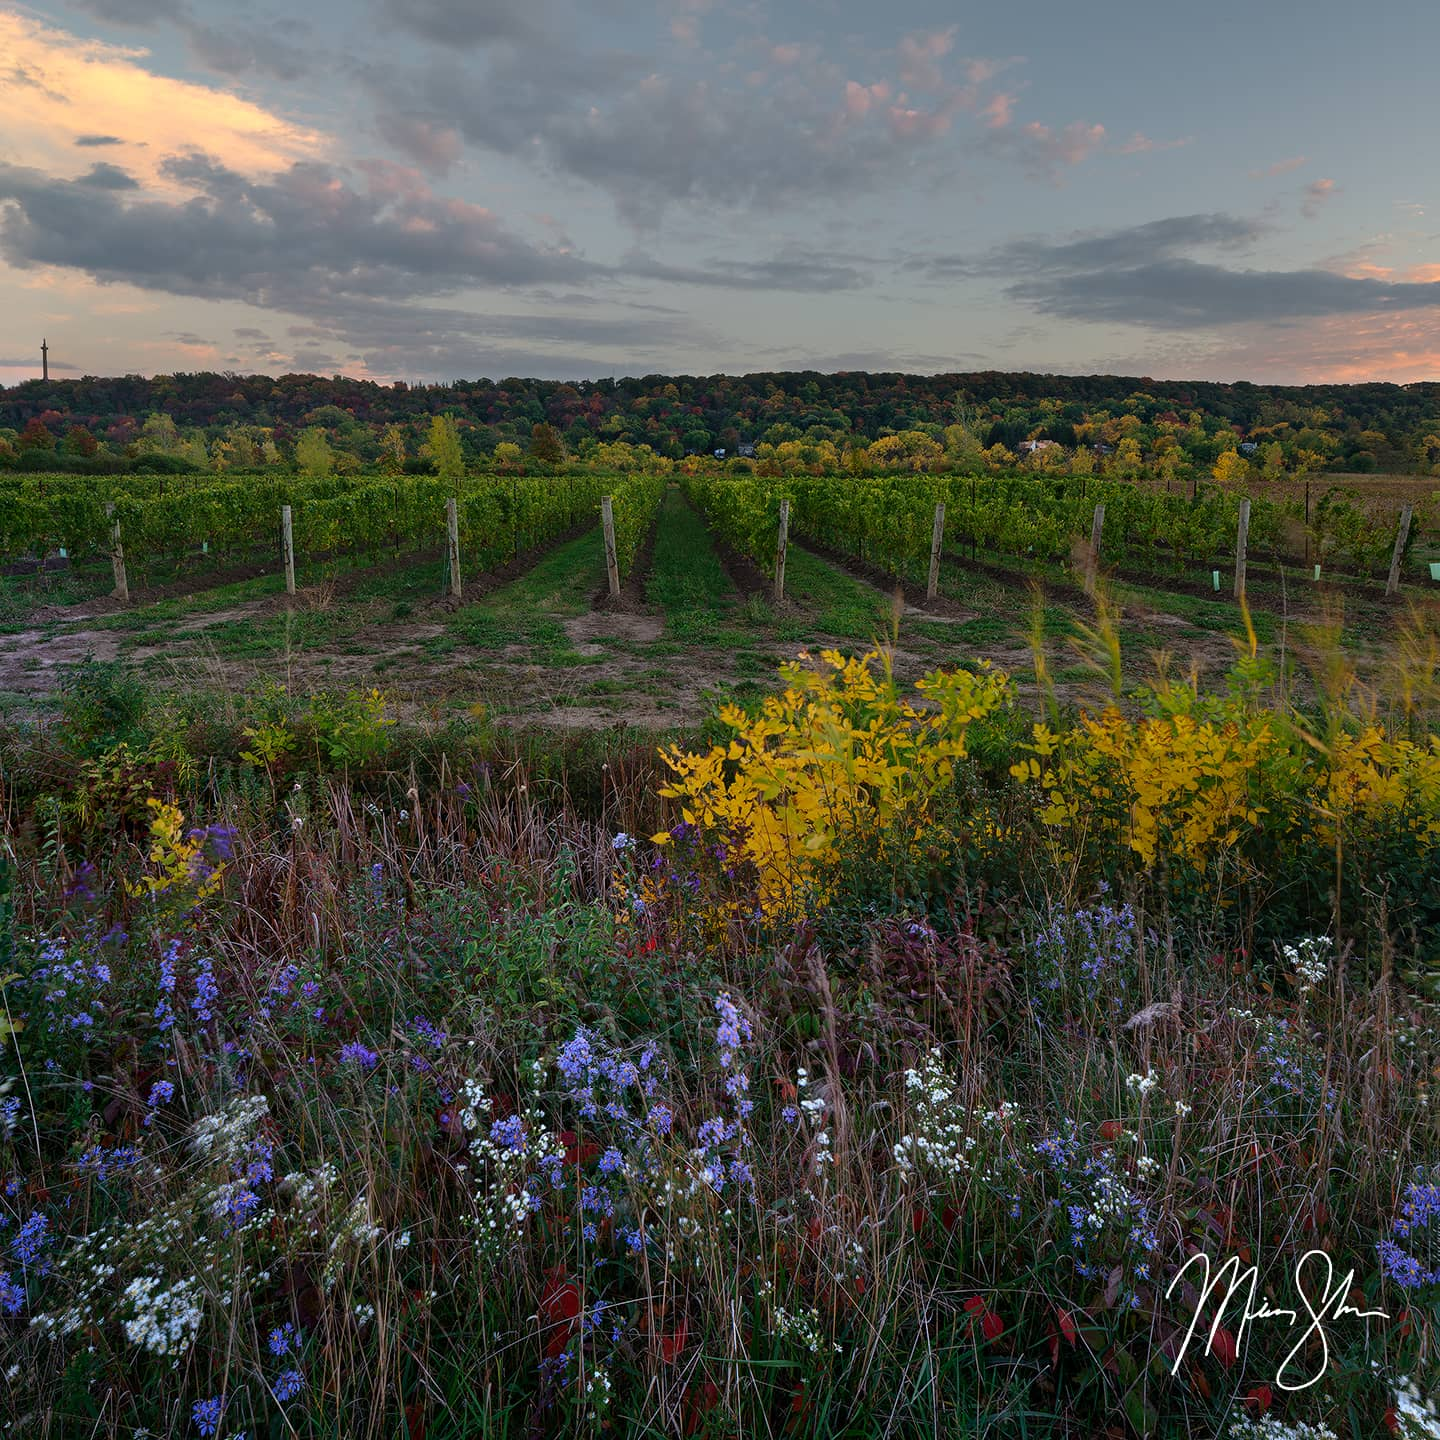 Open edition fine art print of Niagara Vineyard Sunset from Mickey Shannon Photography. Location: Niagara-on-the-Lake, Ontario, Canada